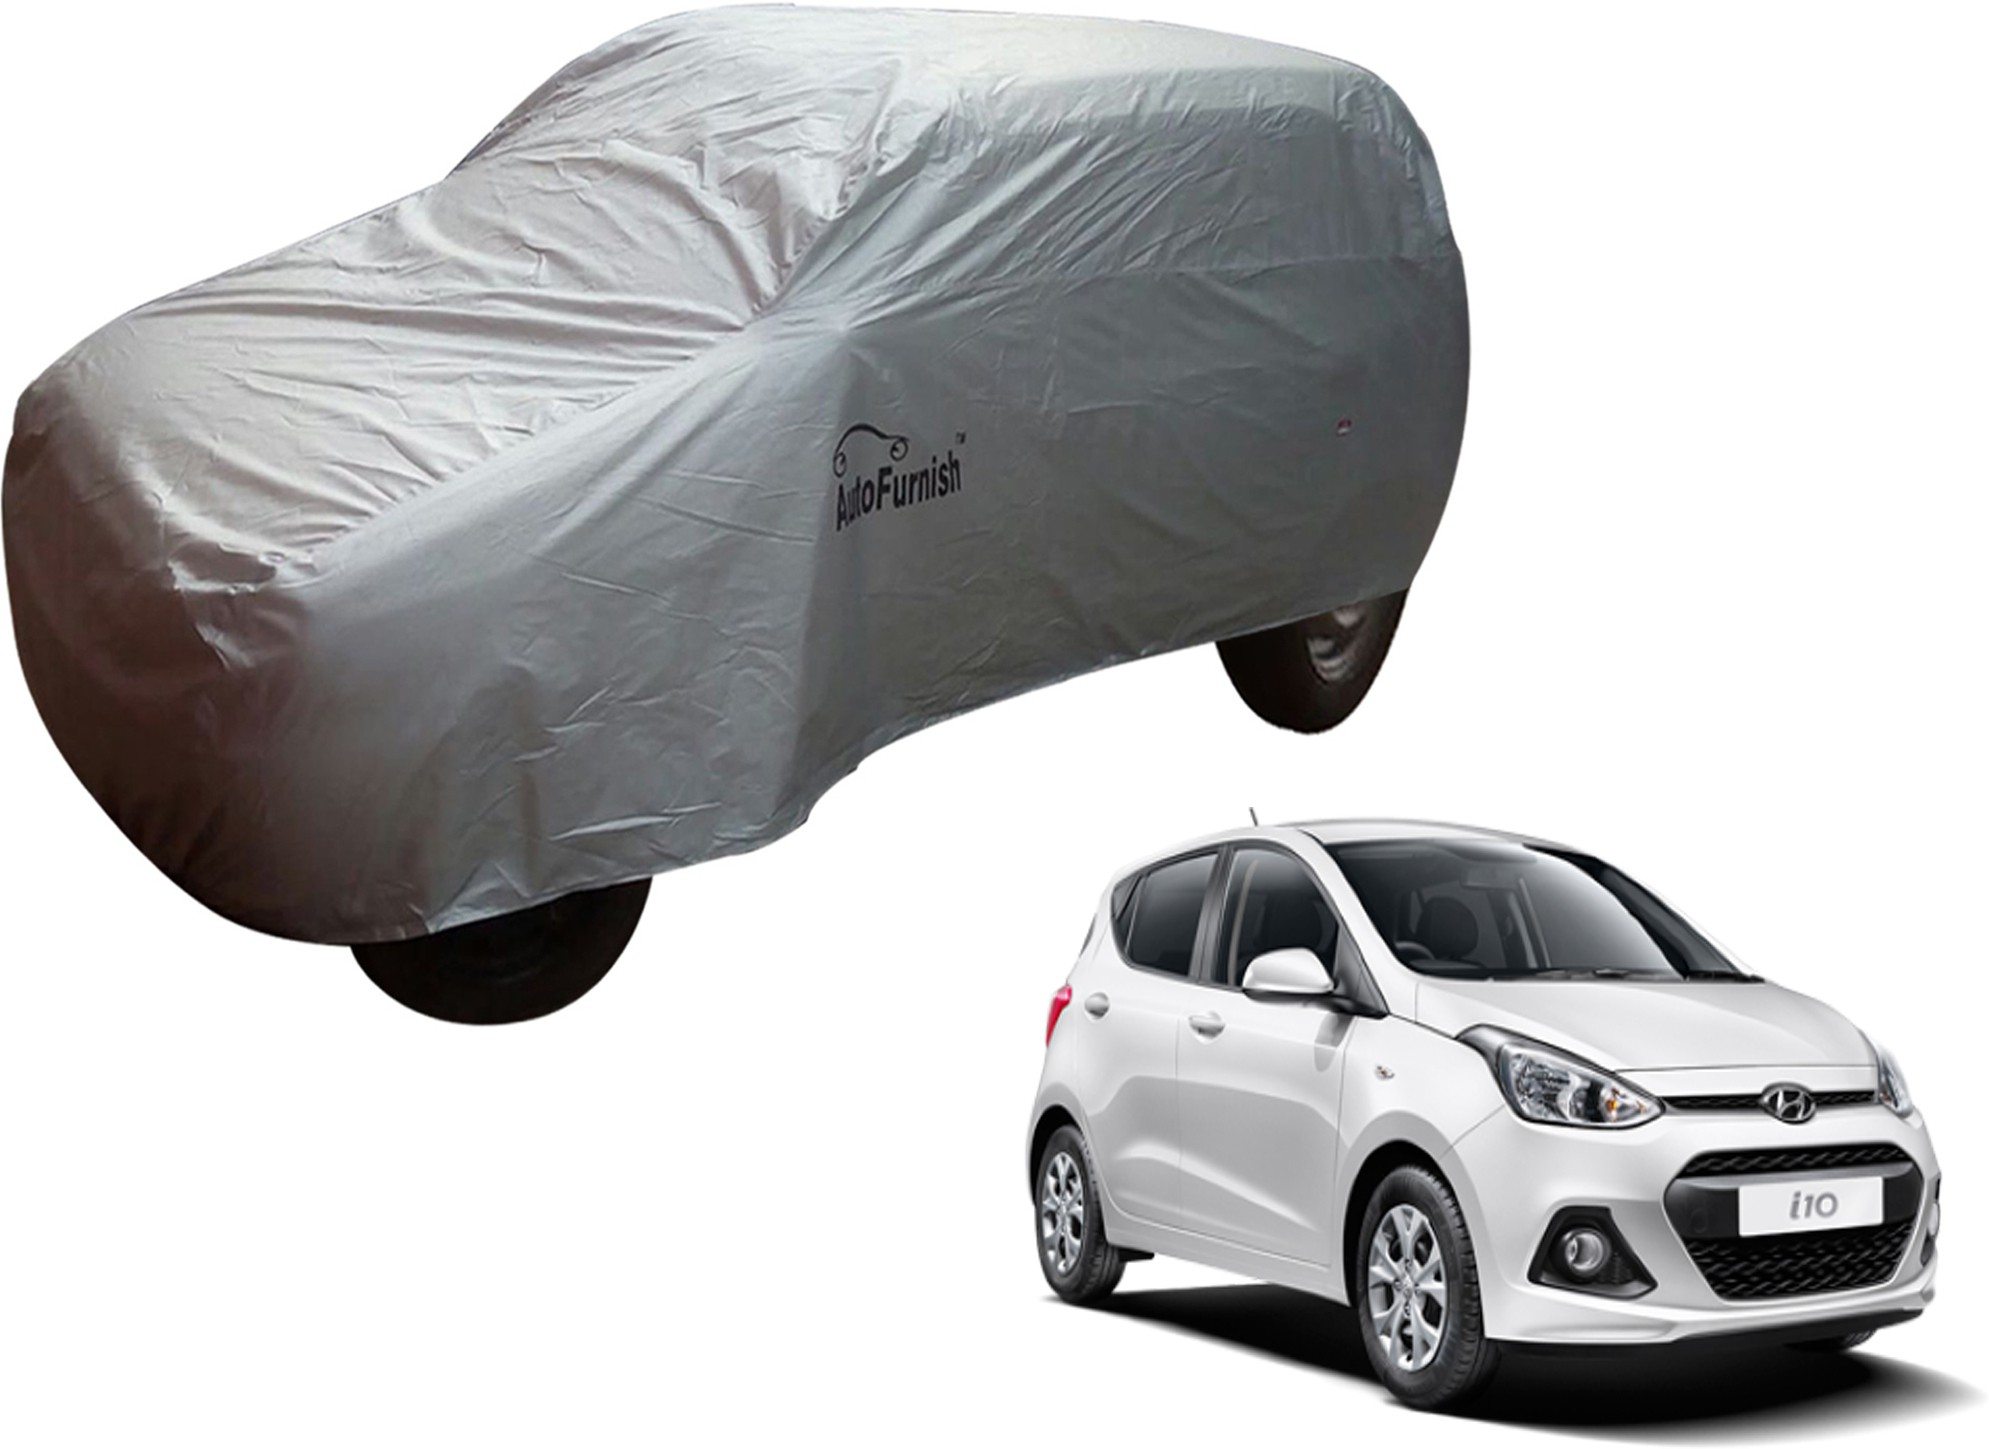 Deals | Under Rs.999 For Hyundai i10